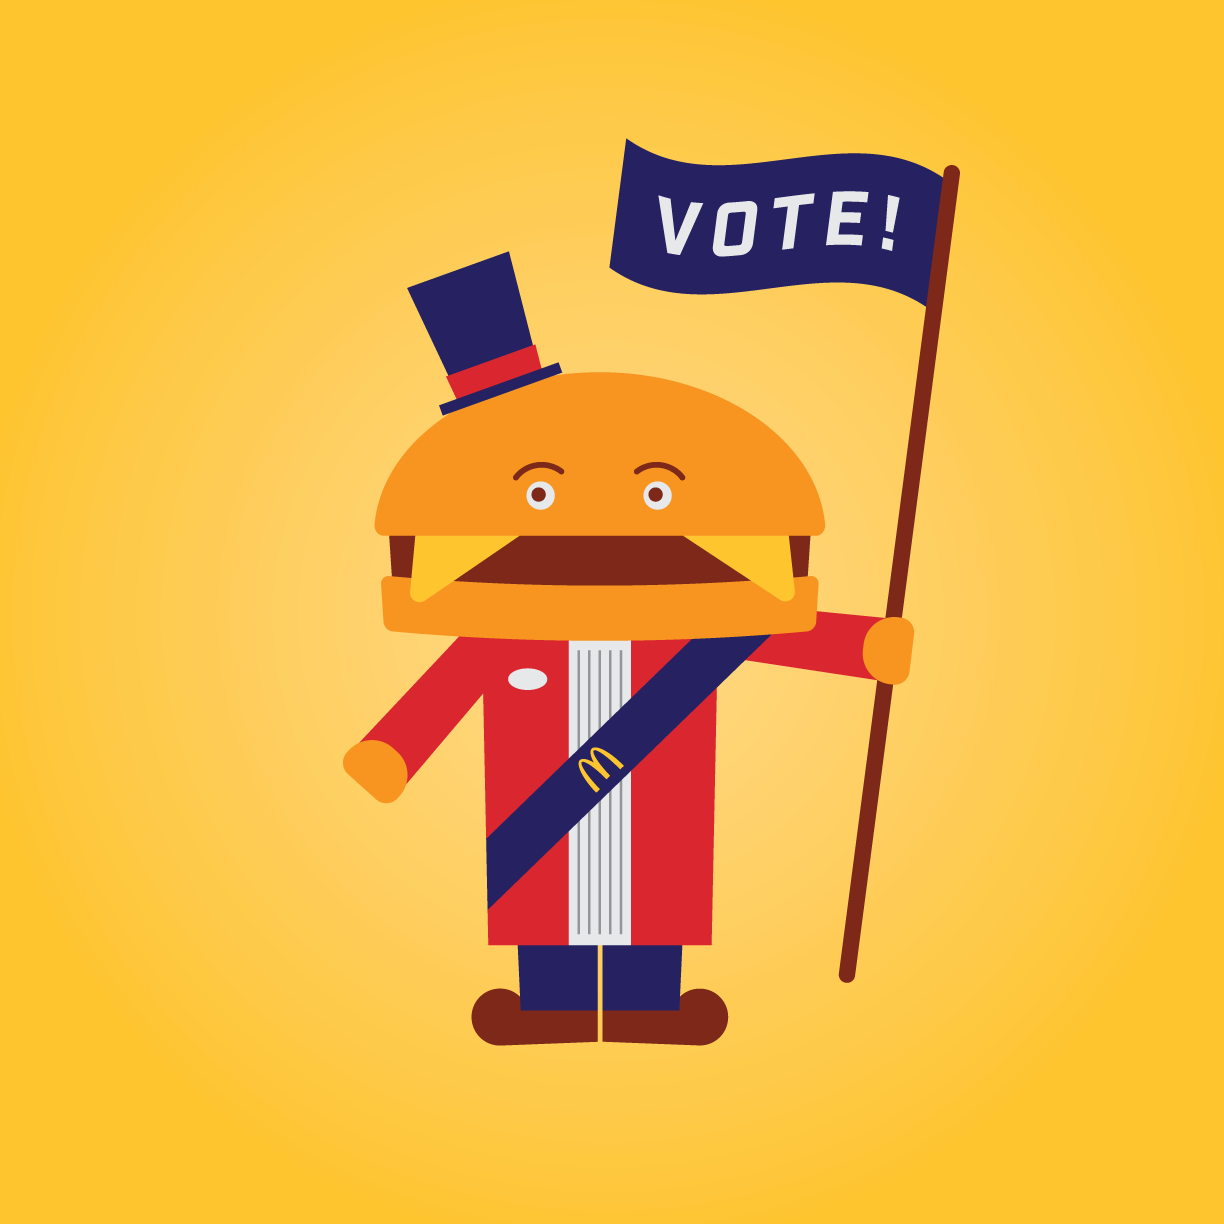 Mayor Mccheese Vote Golden State Restaurant Group While mccheese was a integral part of mcdonaldland in its early years, he was slowly phased out and didn't appear. mayor mccheese vote golden state